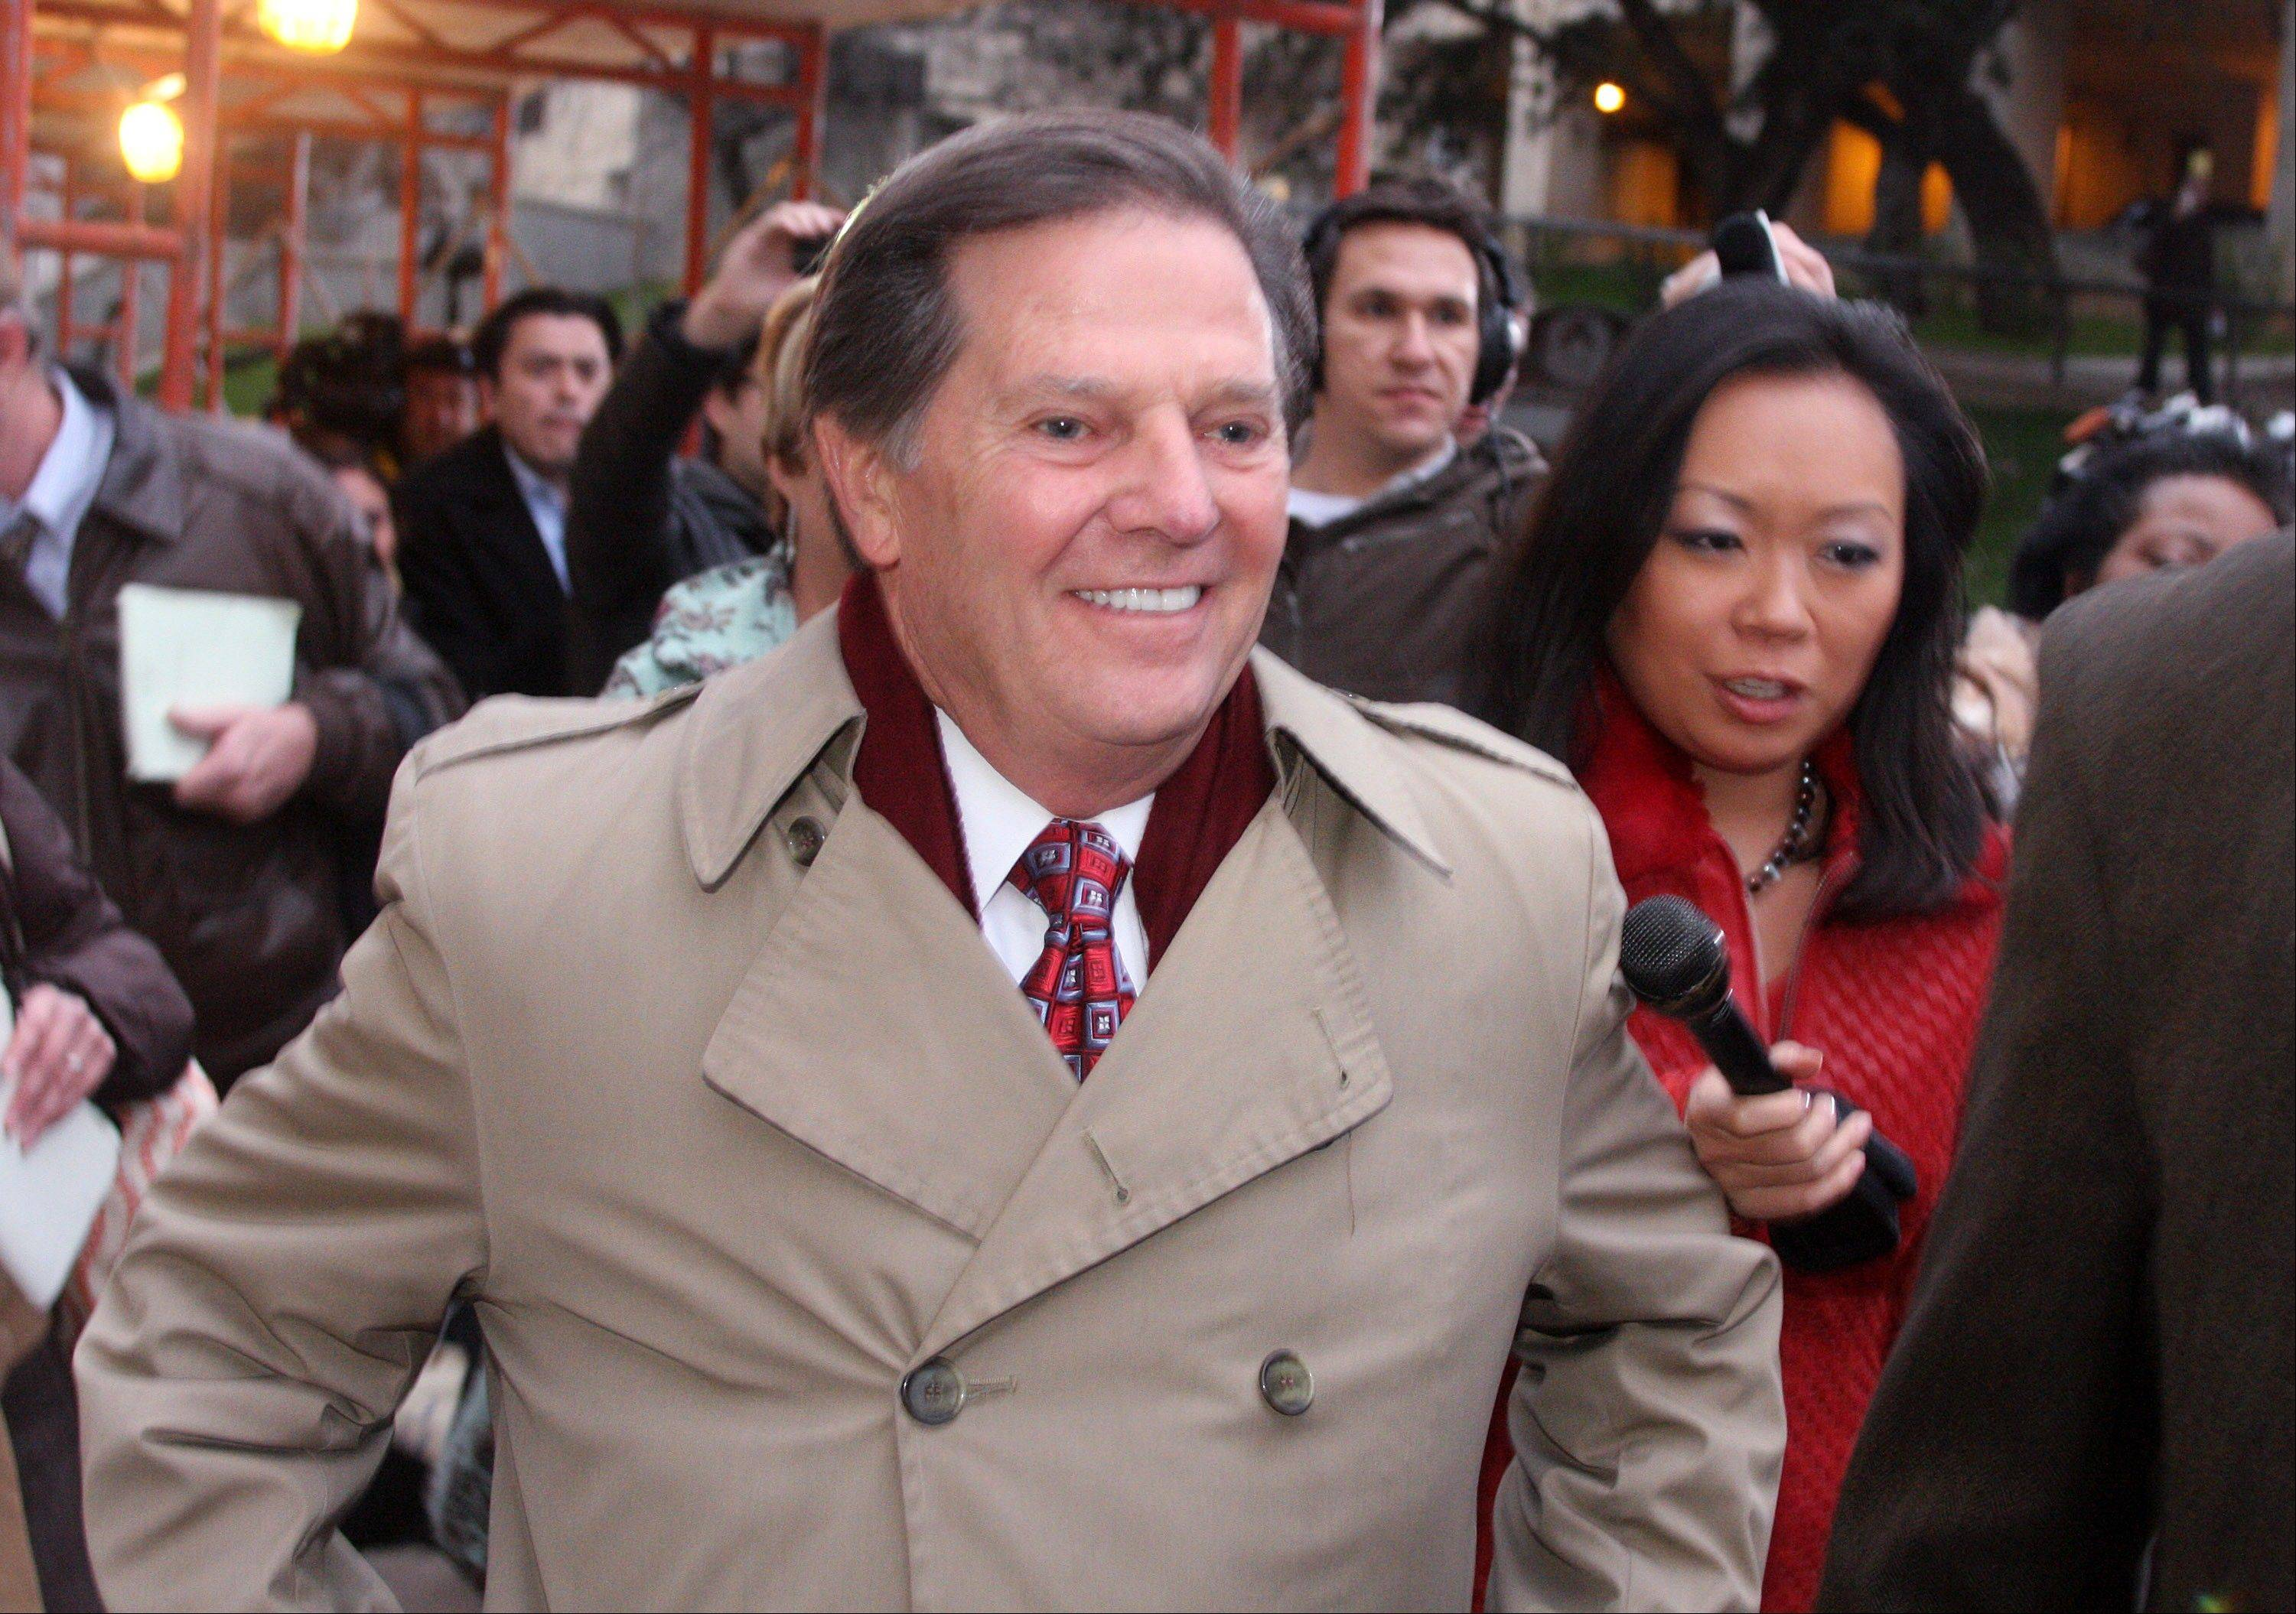 FILE - In this Jan. 10, 2011, file photo, Former House Majority Leader Tom DeLay leaves the Travis Co. Jail after posting an appeals bond in Austin, Texas. A Texas appeals court tossed the criminal conviction of DeLay on Thursday, Sept. 19, 2013, saying there was insufficient evidence for a jury in 2010 to have found him guilty of illegally funneling money to Republican candidates.